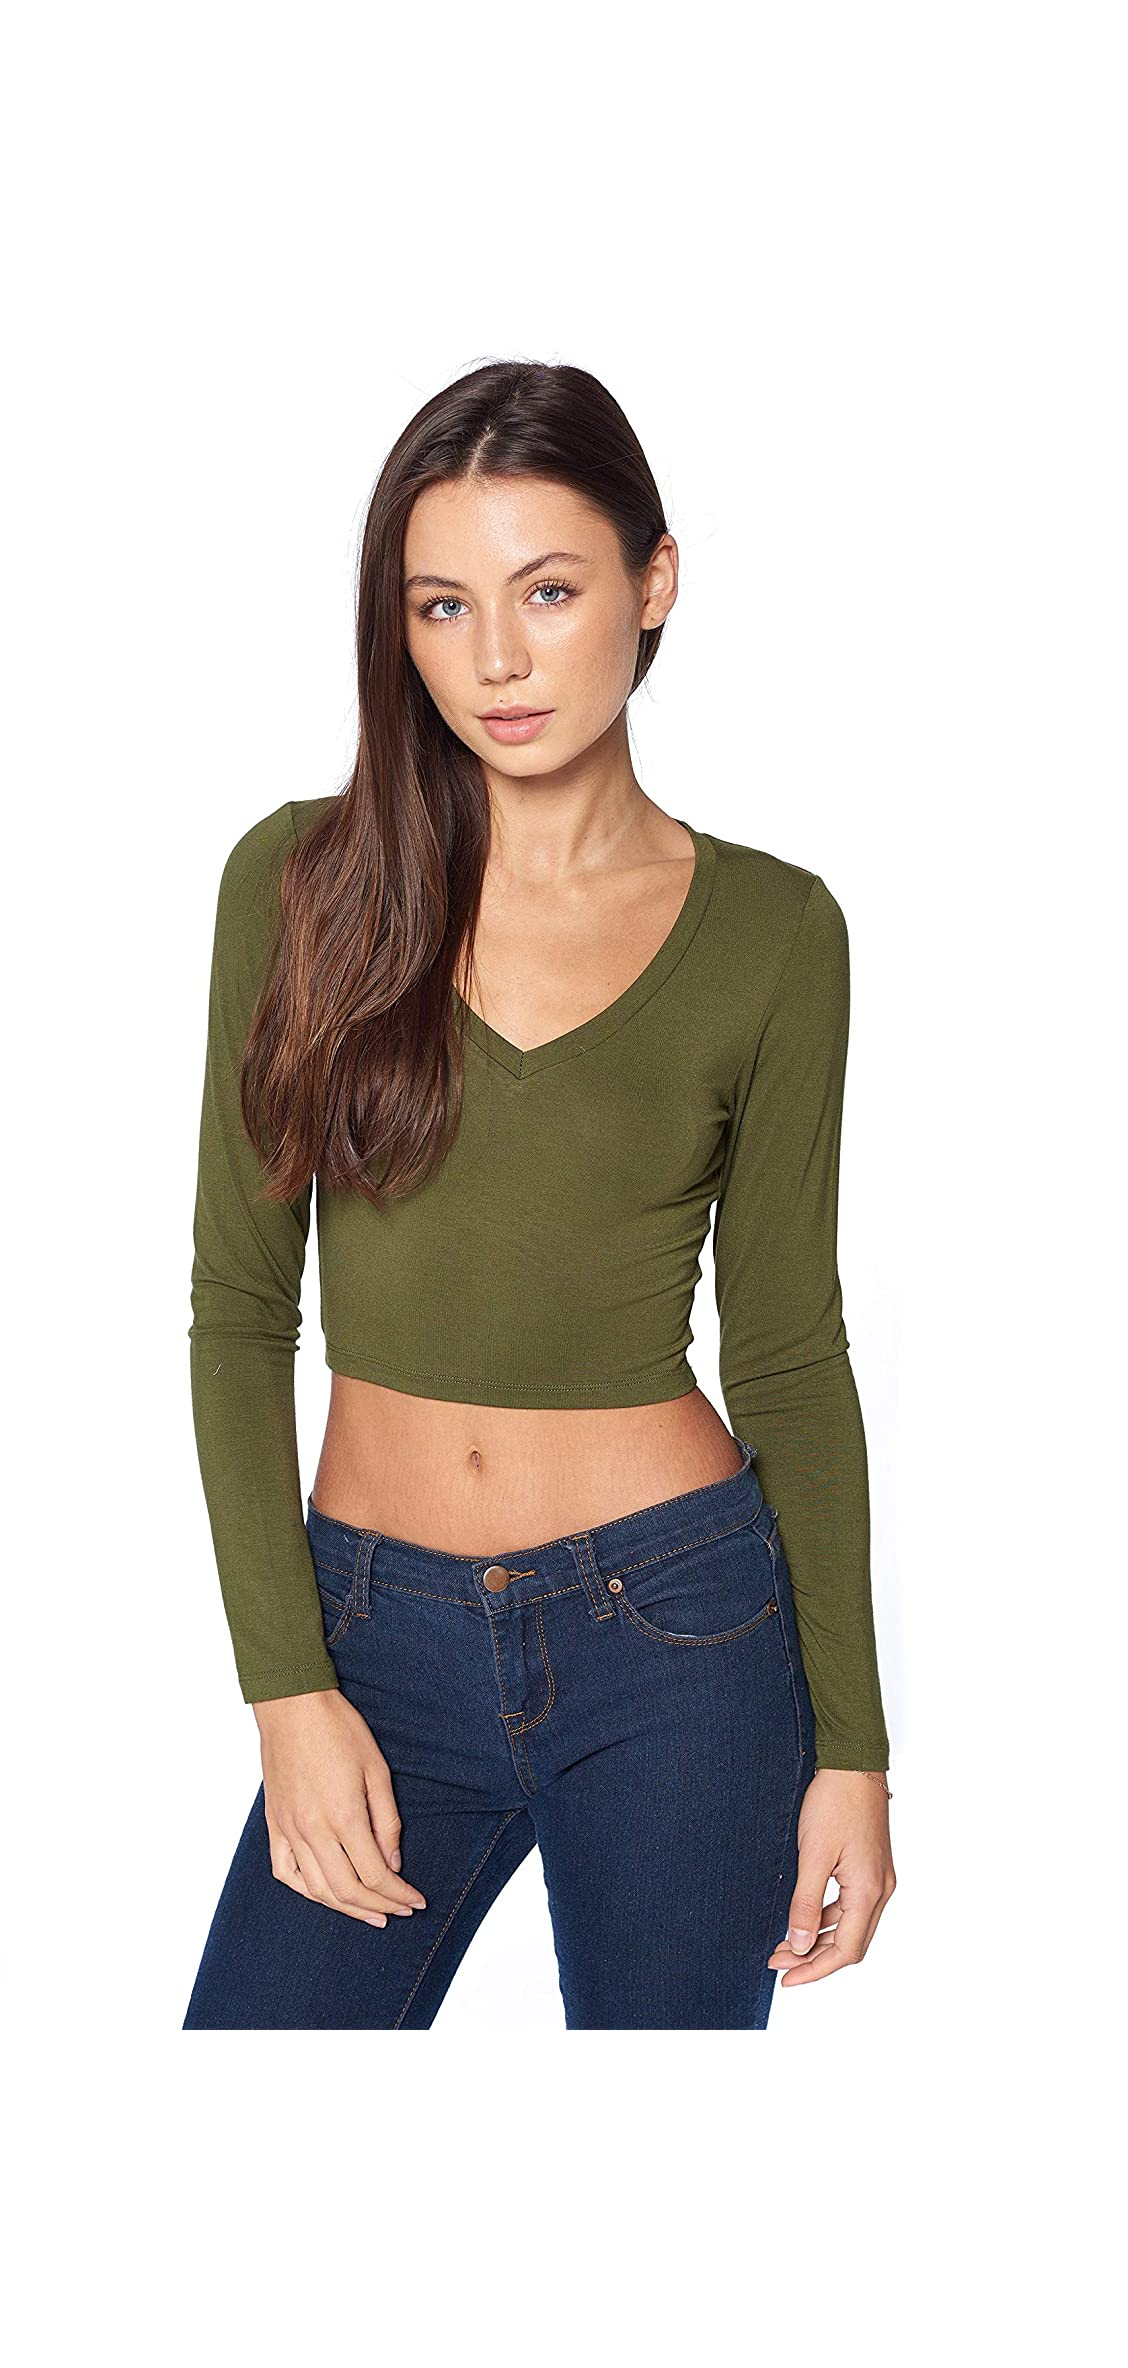 Women's Basic Long Sleeves V Neck Fitted Crop Top T